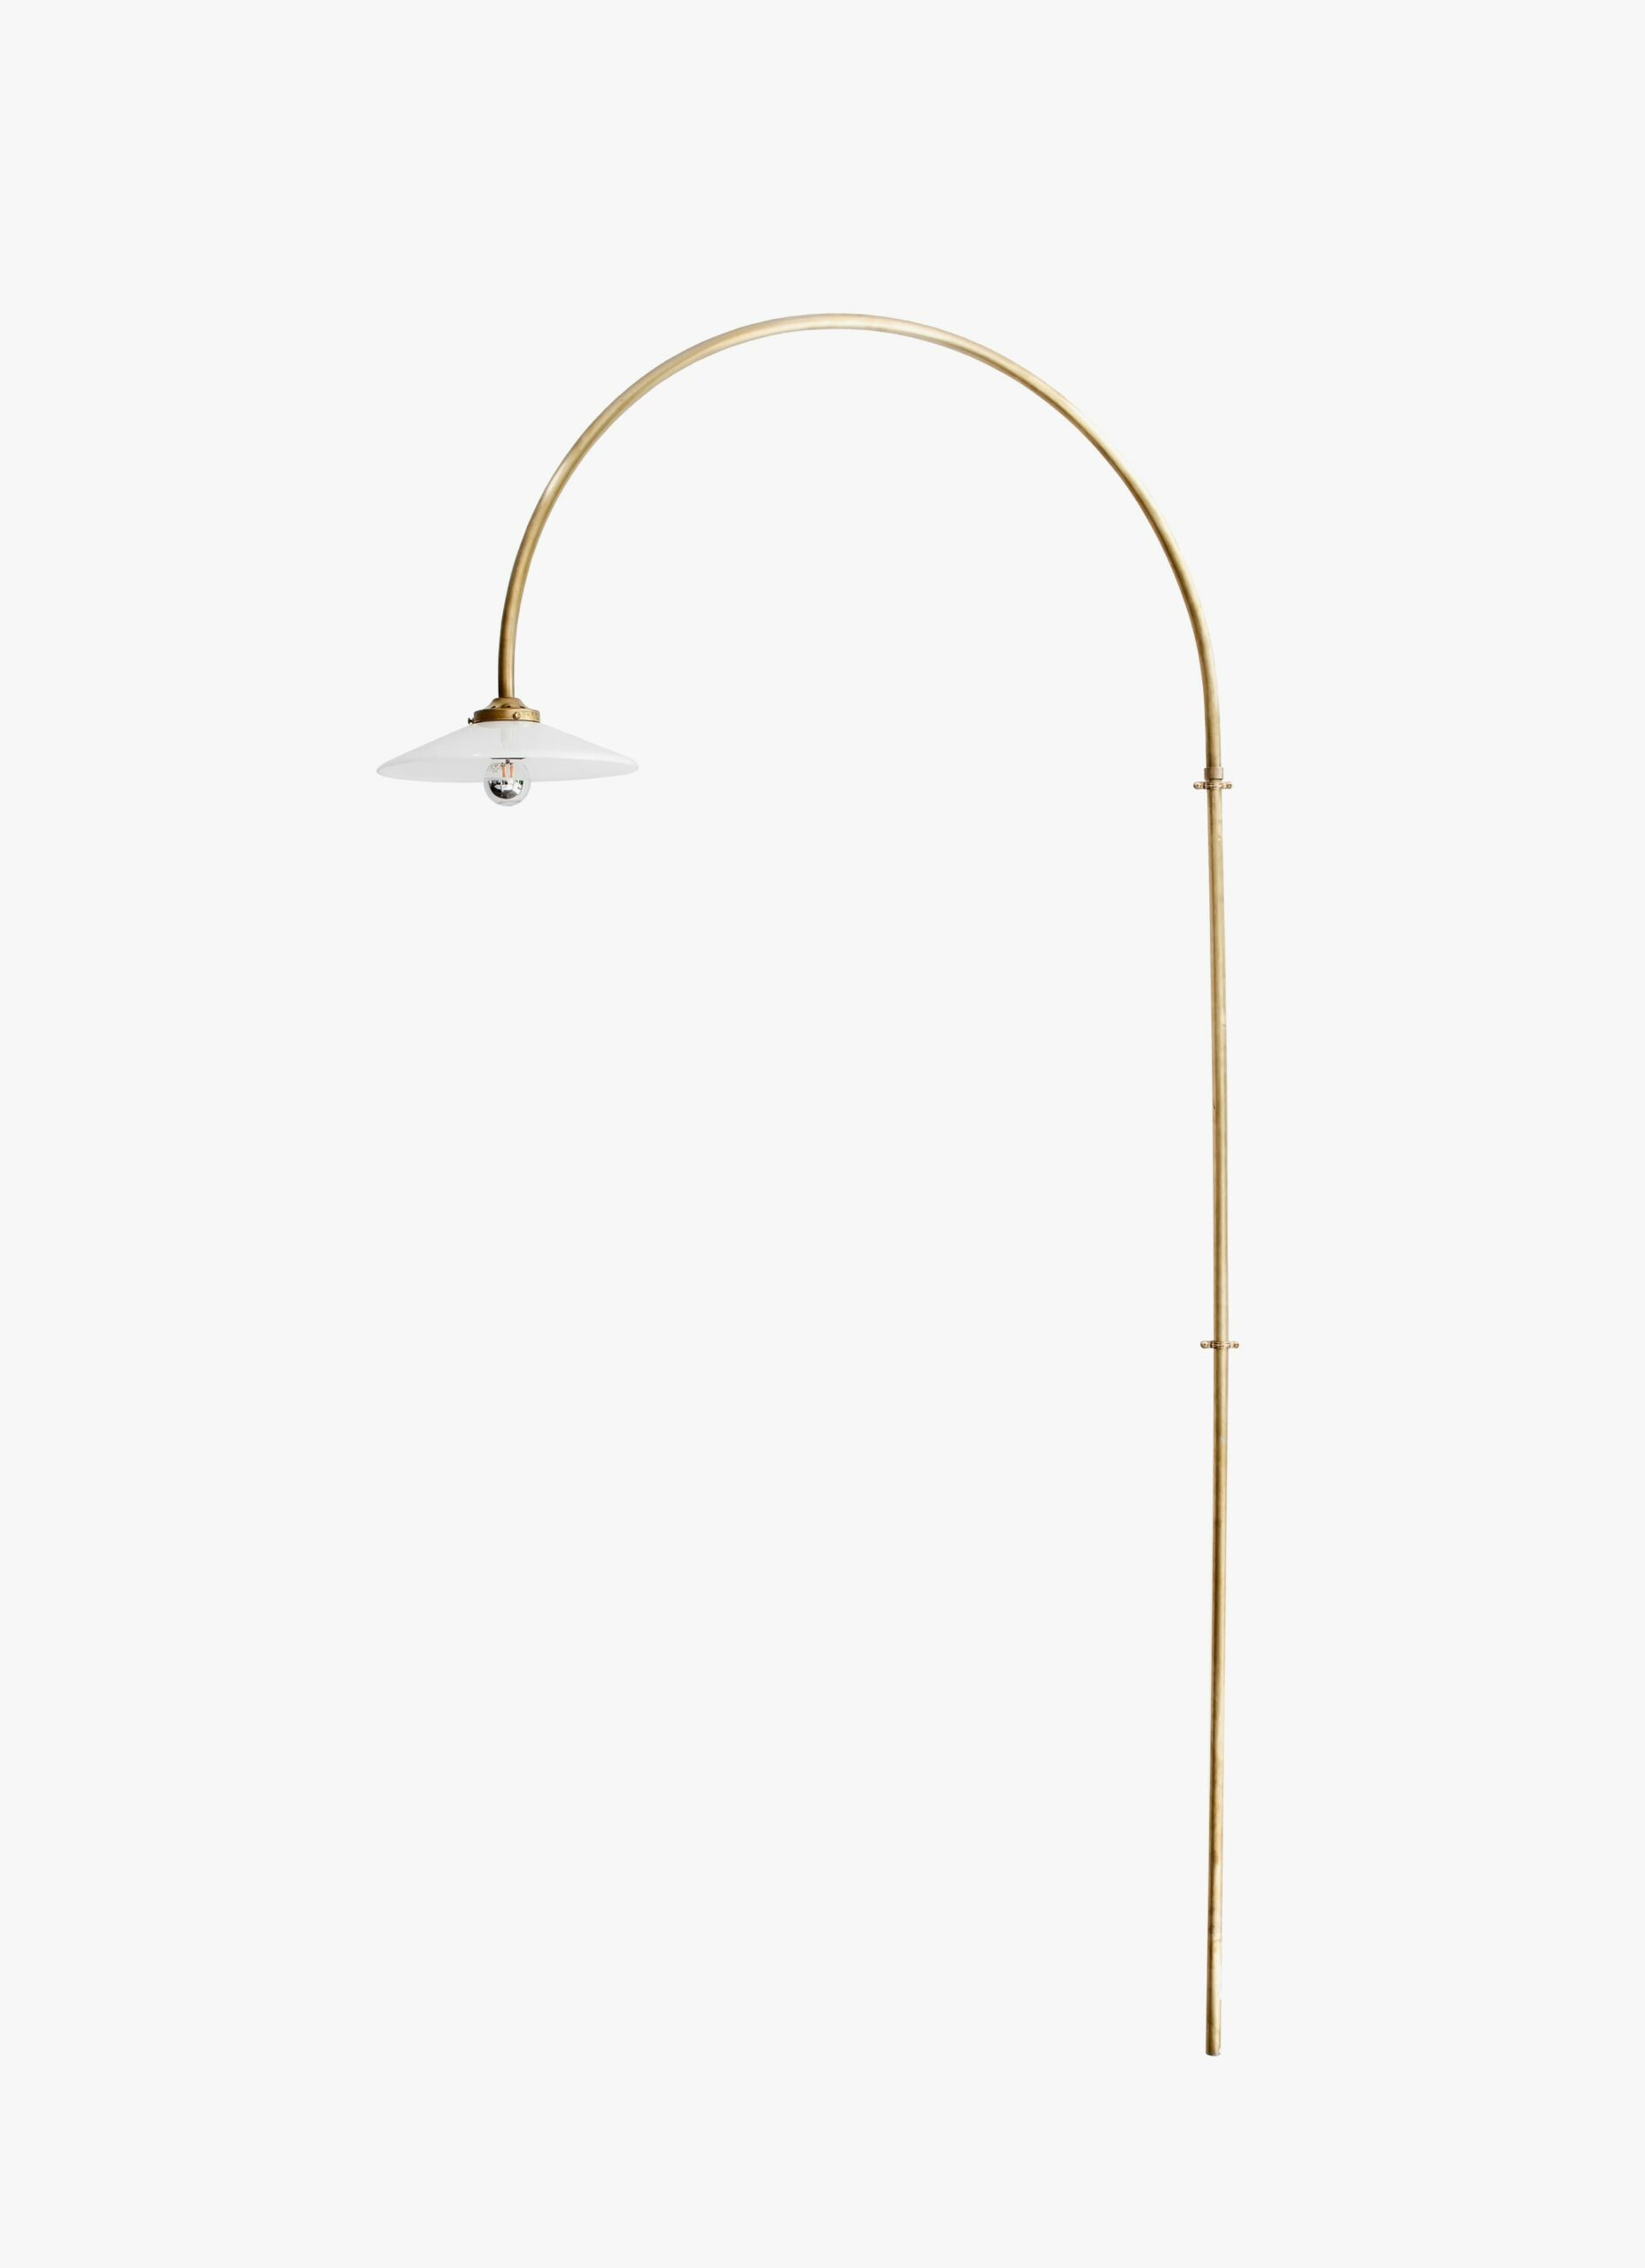 Valerie Objects - Hanging Lamp - No2 - dif. colors